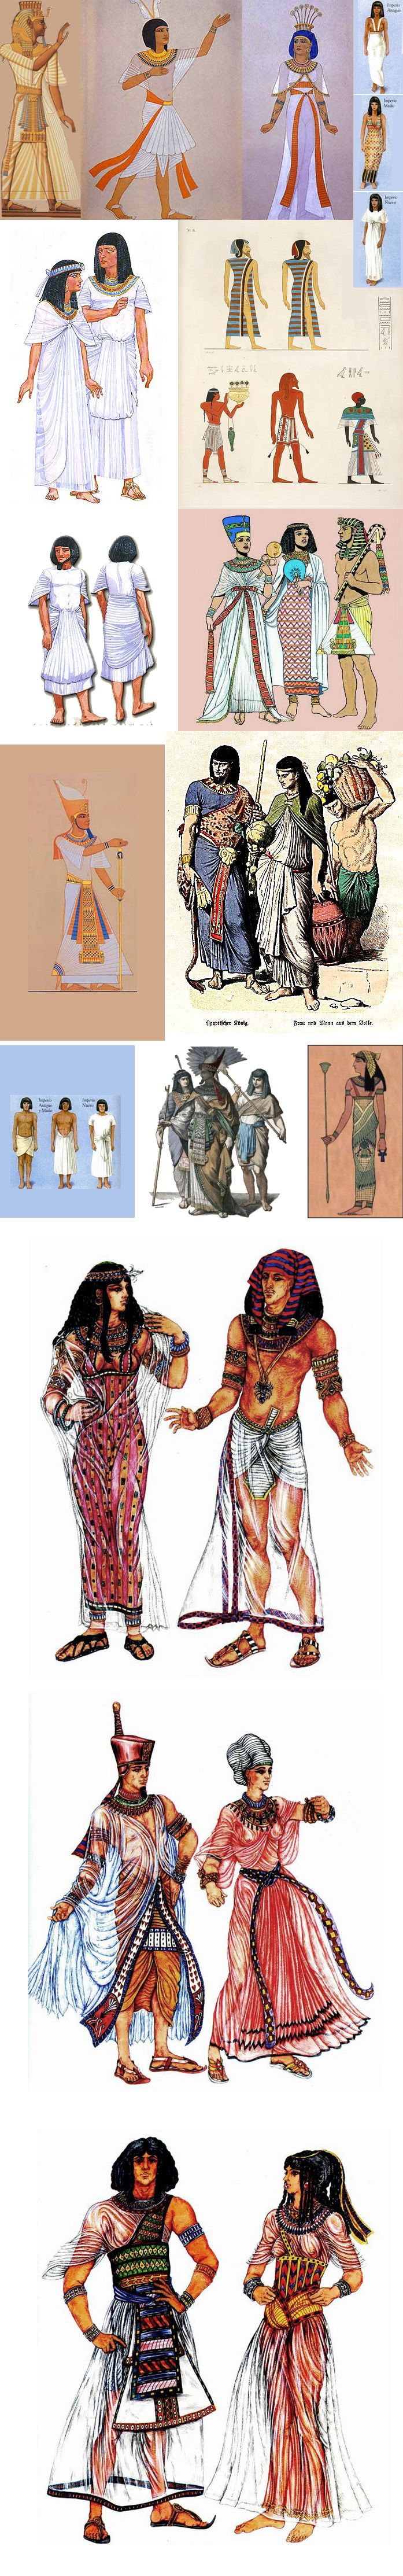 Egypt, egyptian, pharaoh, queen                                                                                                                                                      More